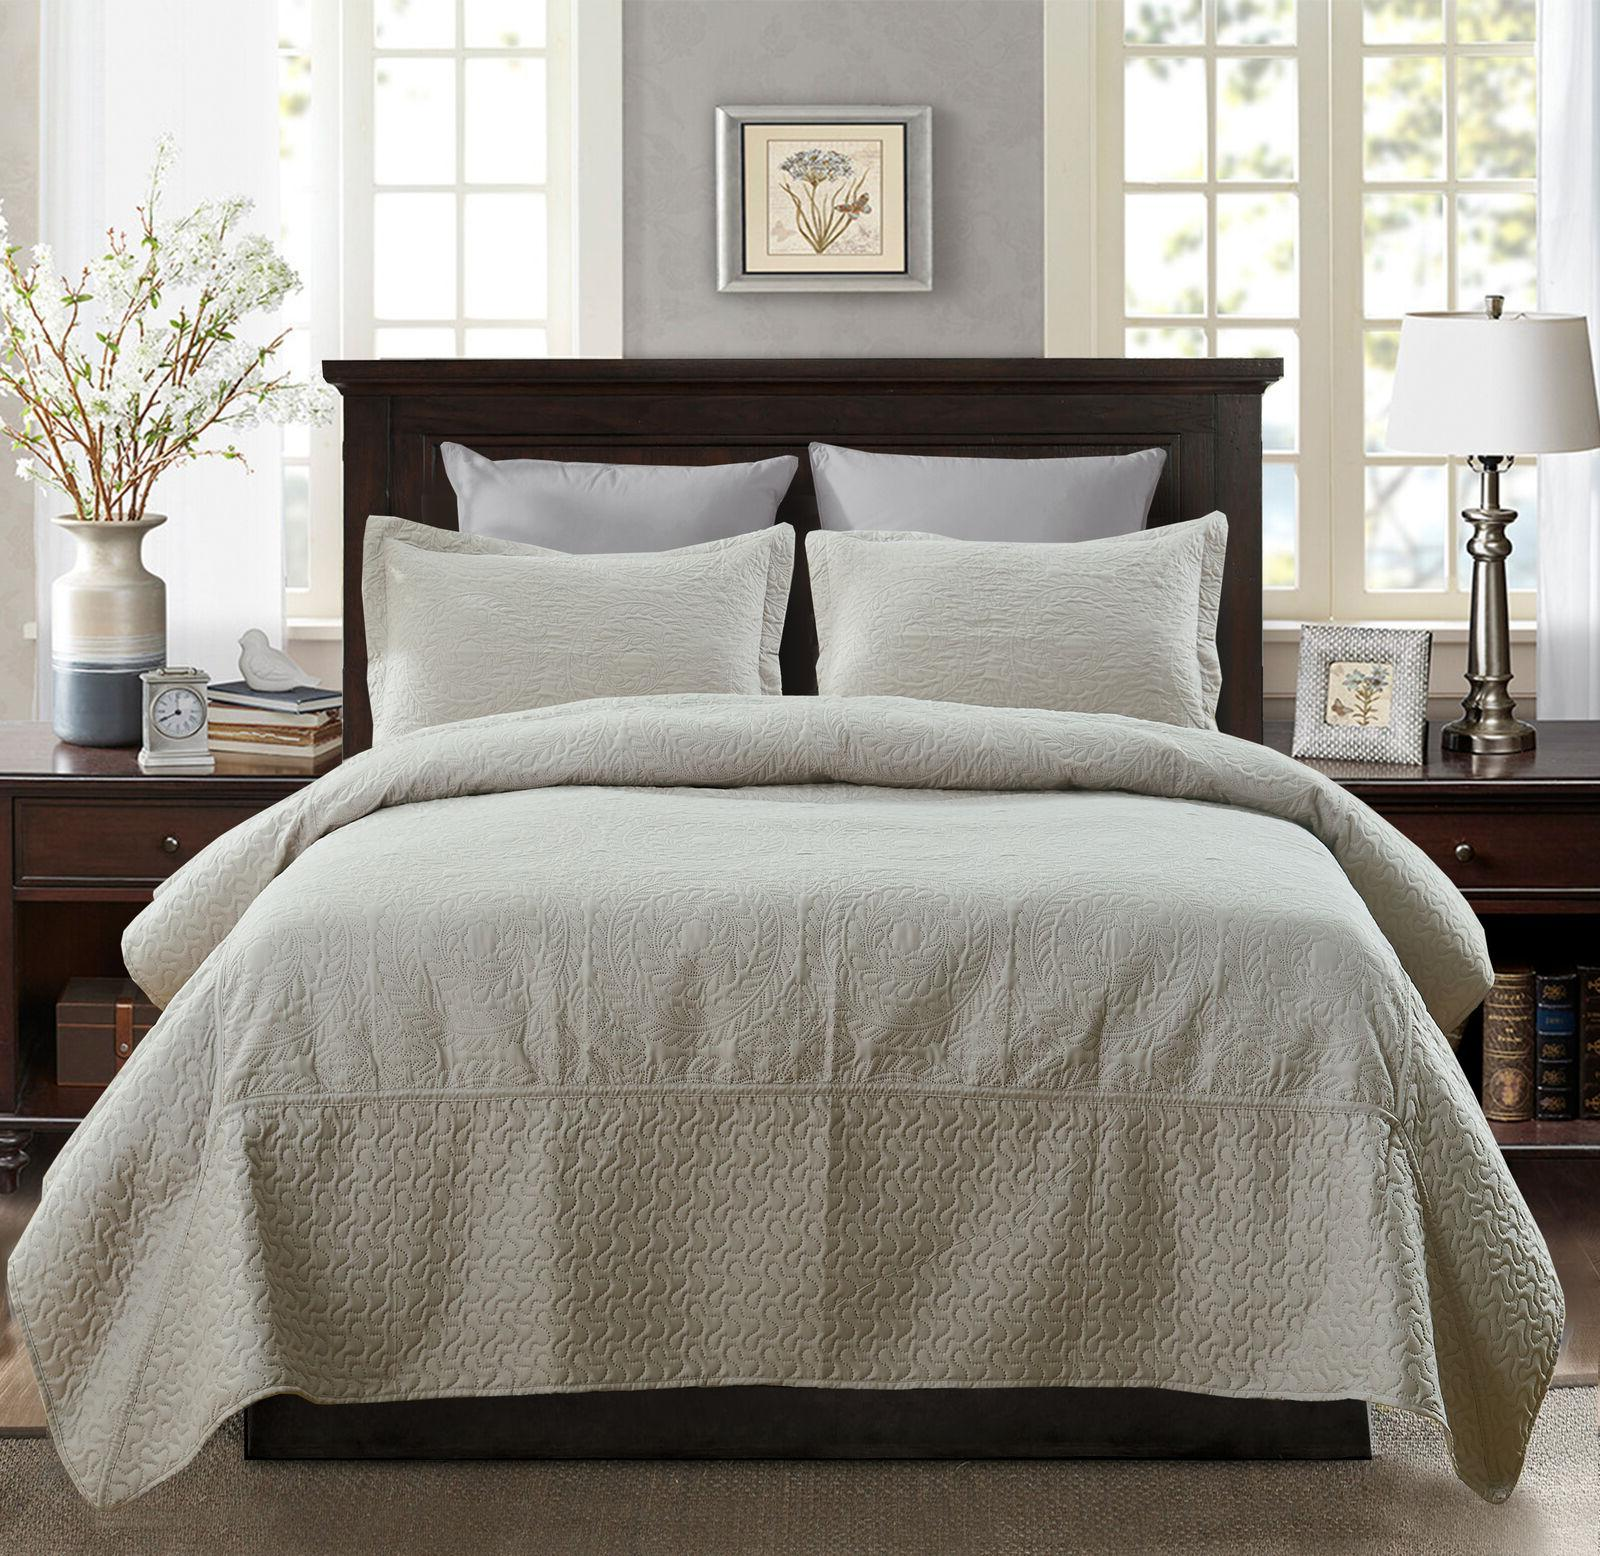 3 piece solid bedding quilt set soft